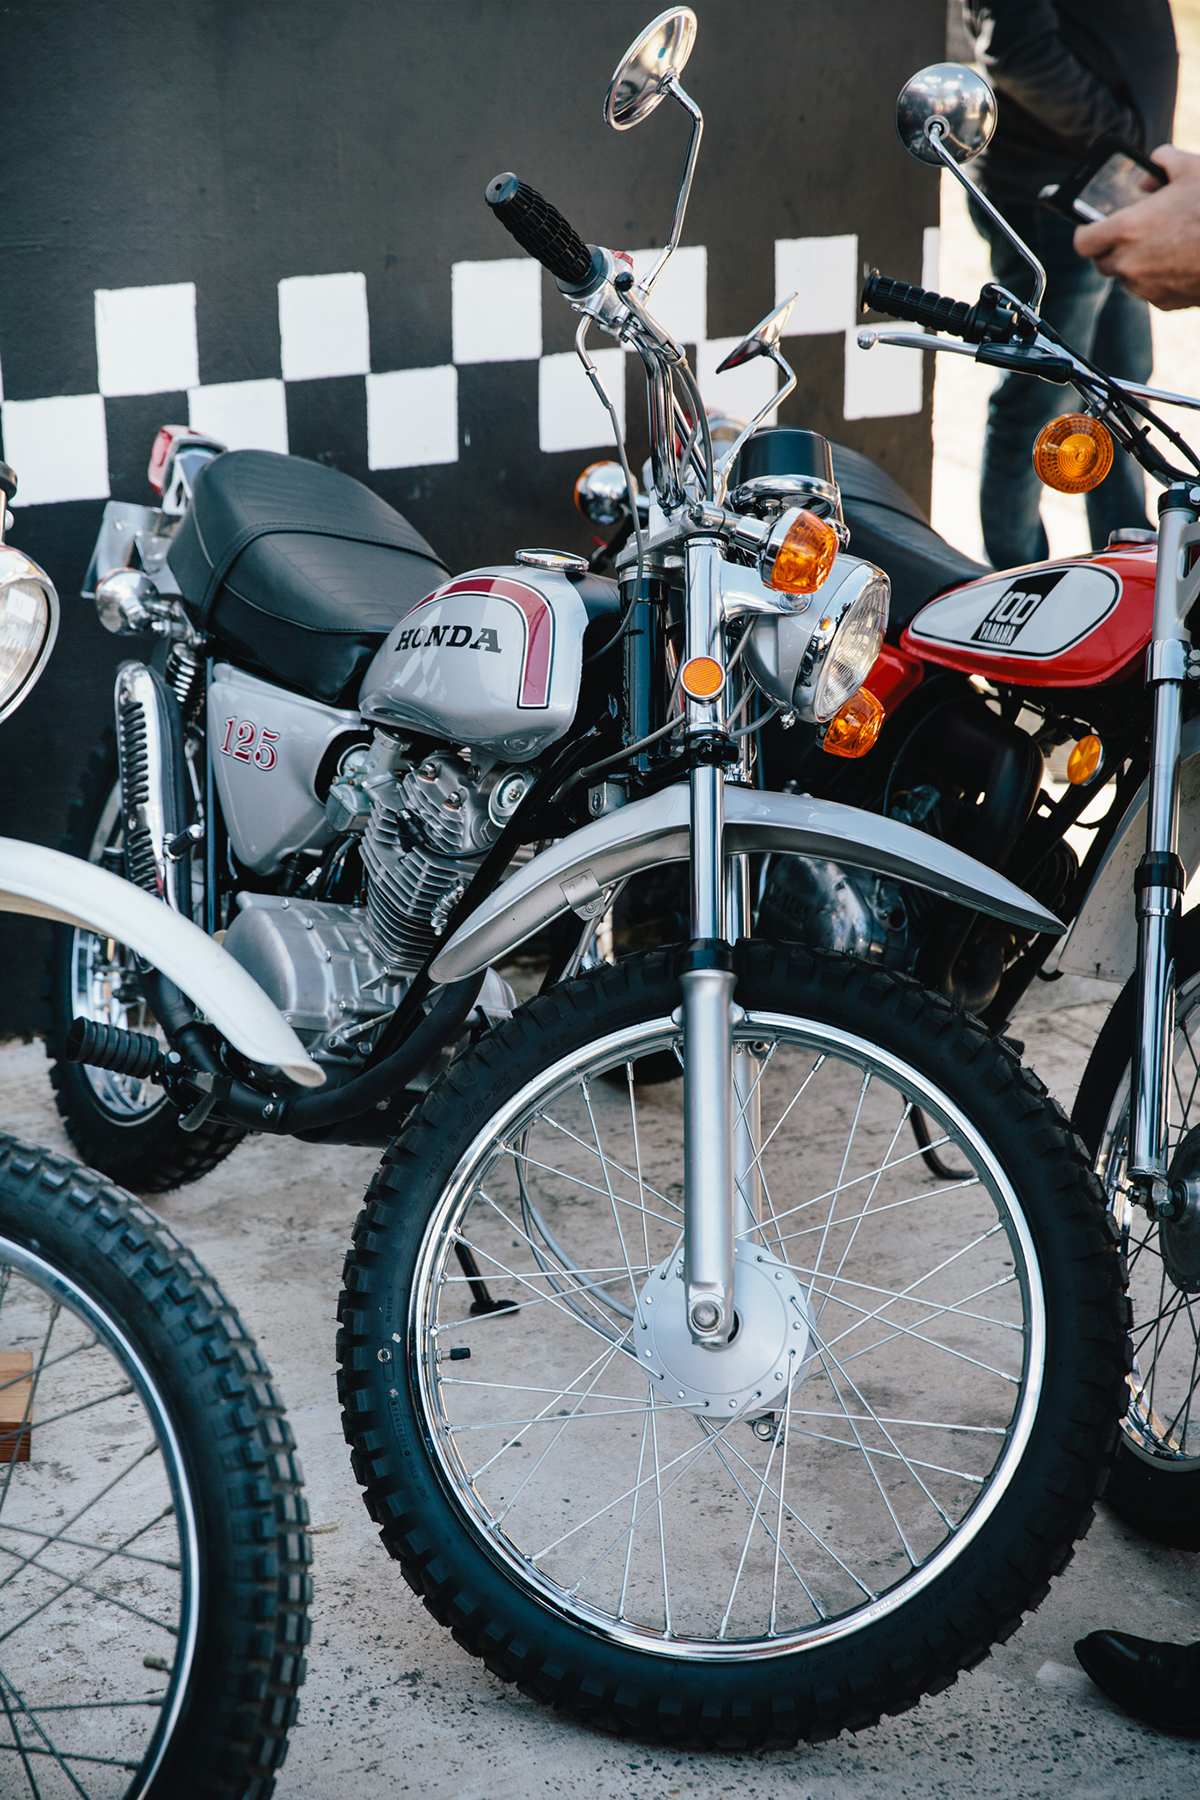 Surfside_Motorcycle_Japanese_8586